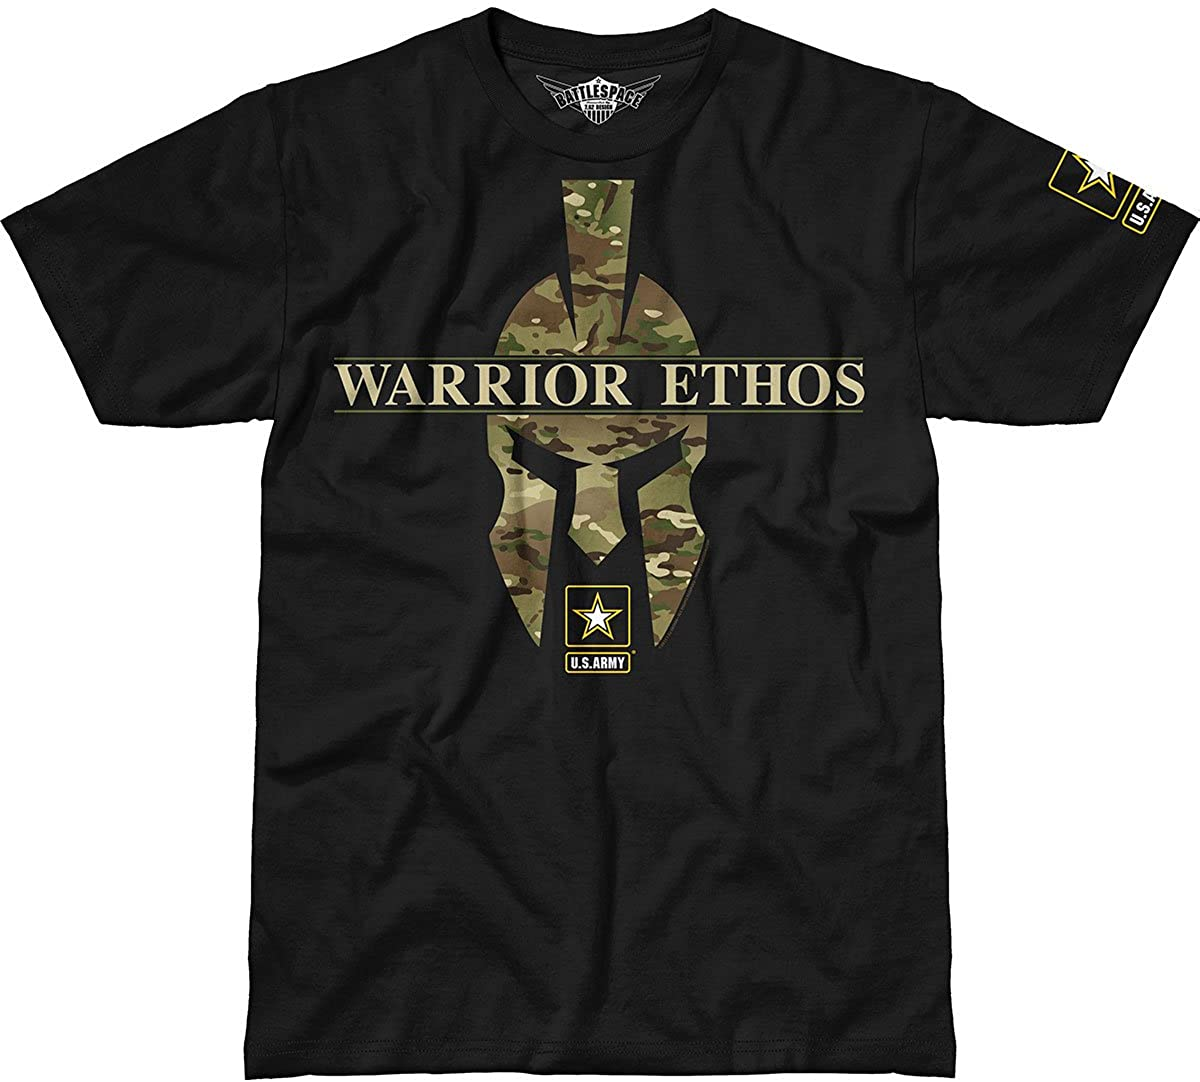 7.62 Design Army 'Warrior Ethos' Men's Battlespace T-Shirt